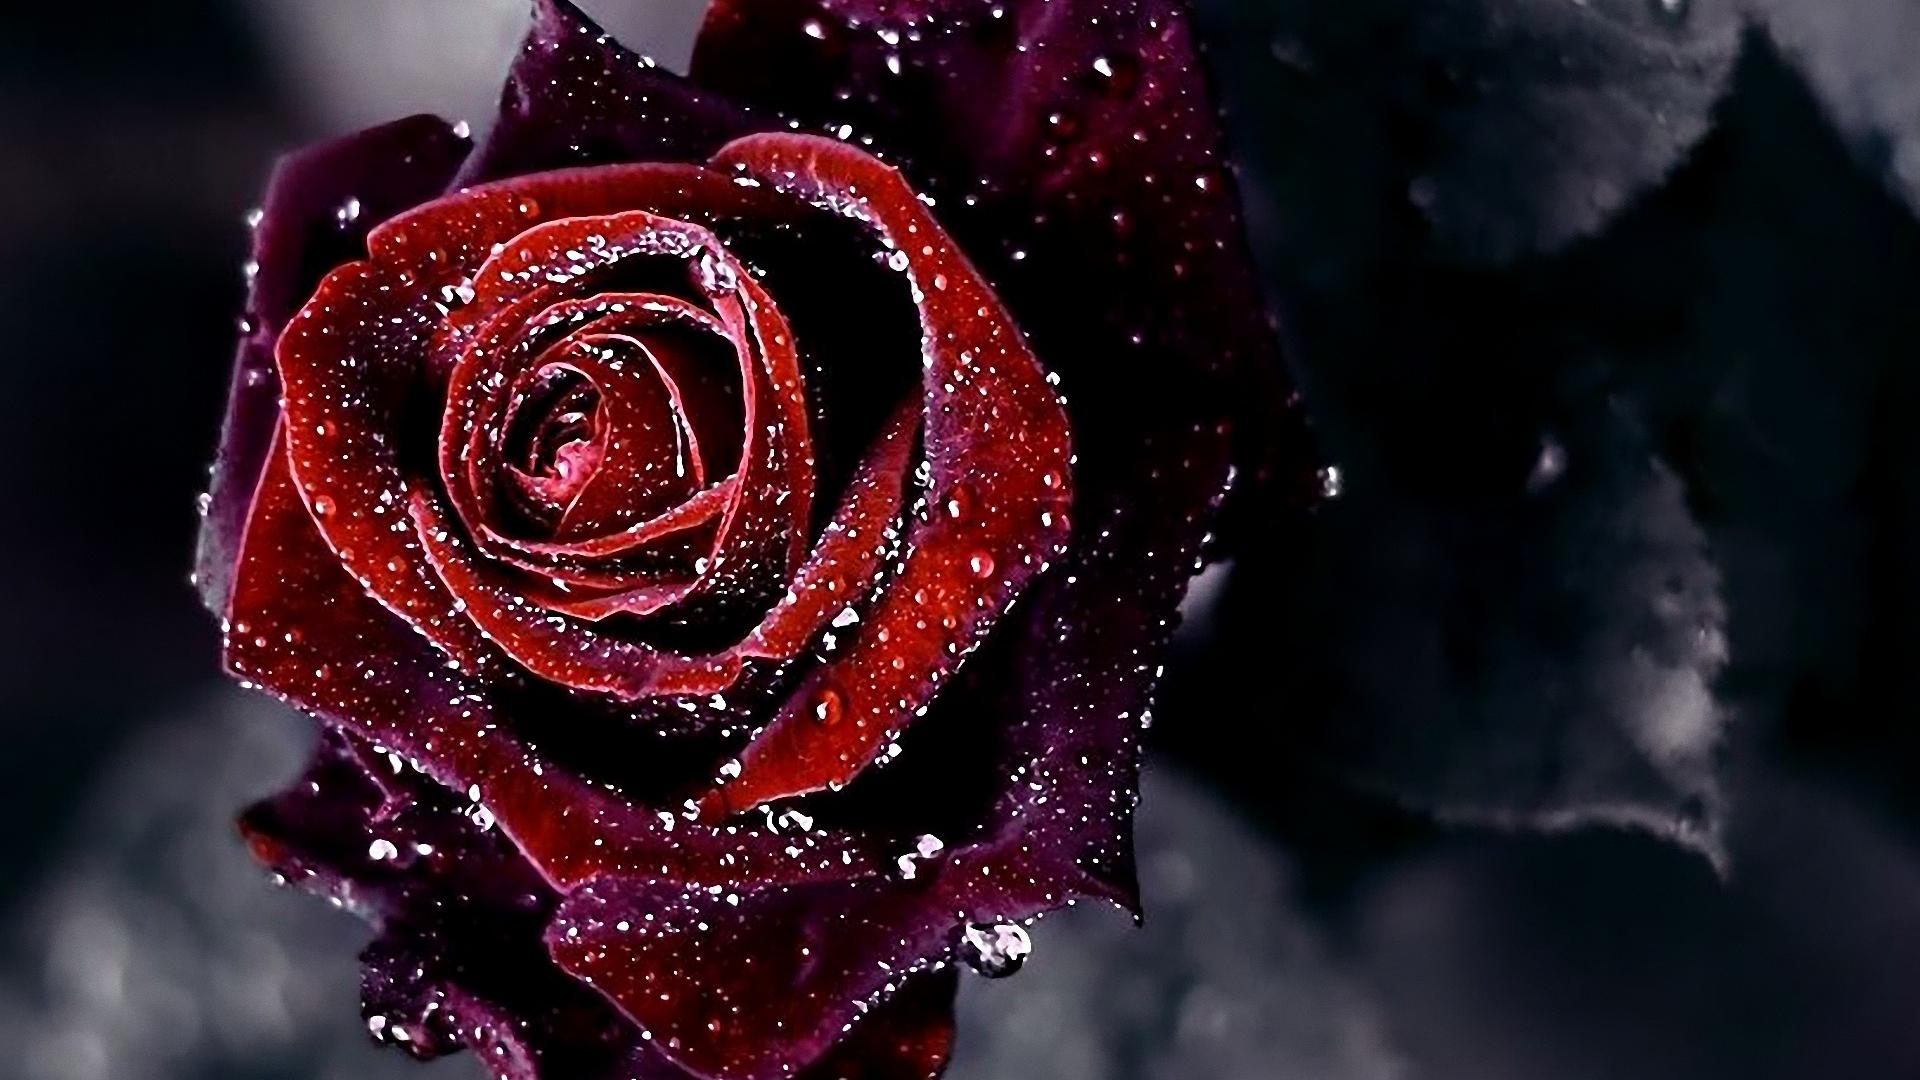 Black And Red Rose Wallpaper